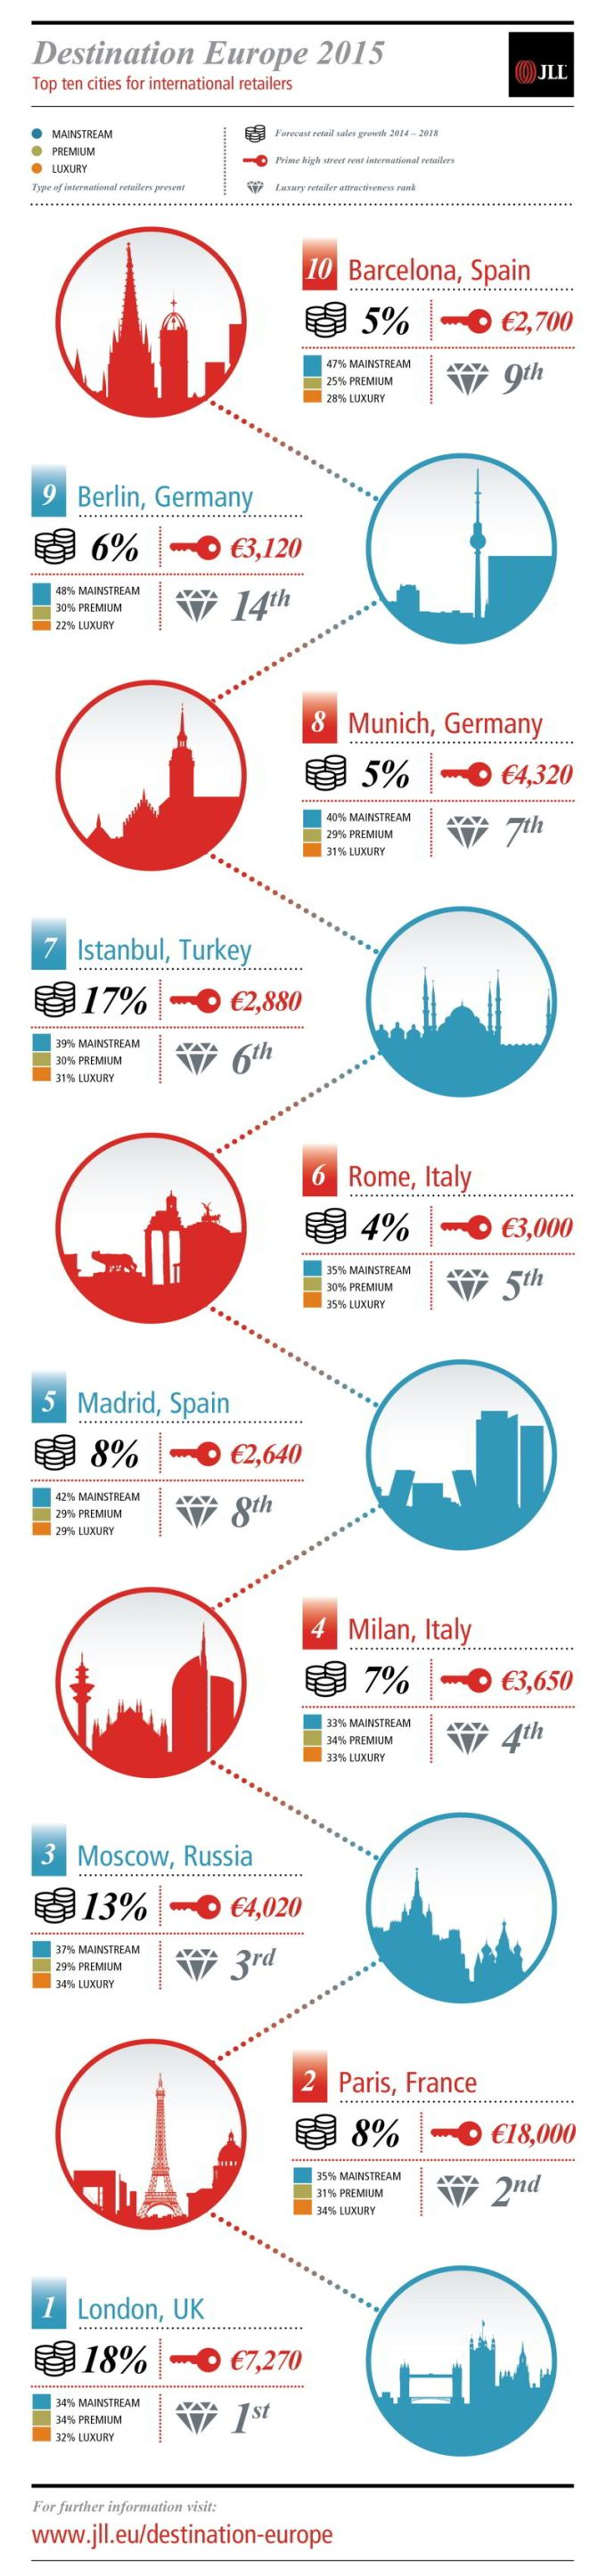 JLL-Destination_Europe-Graphic-v7-02 res